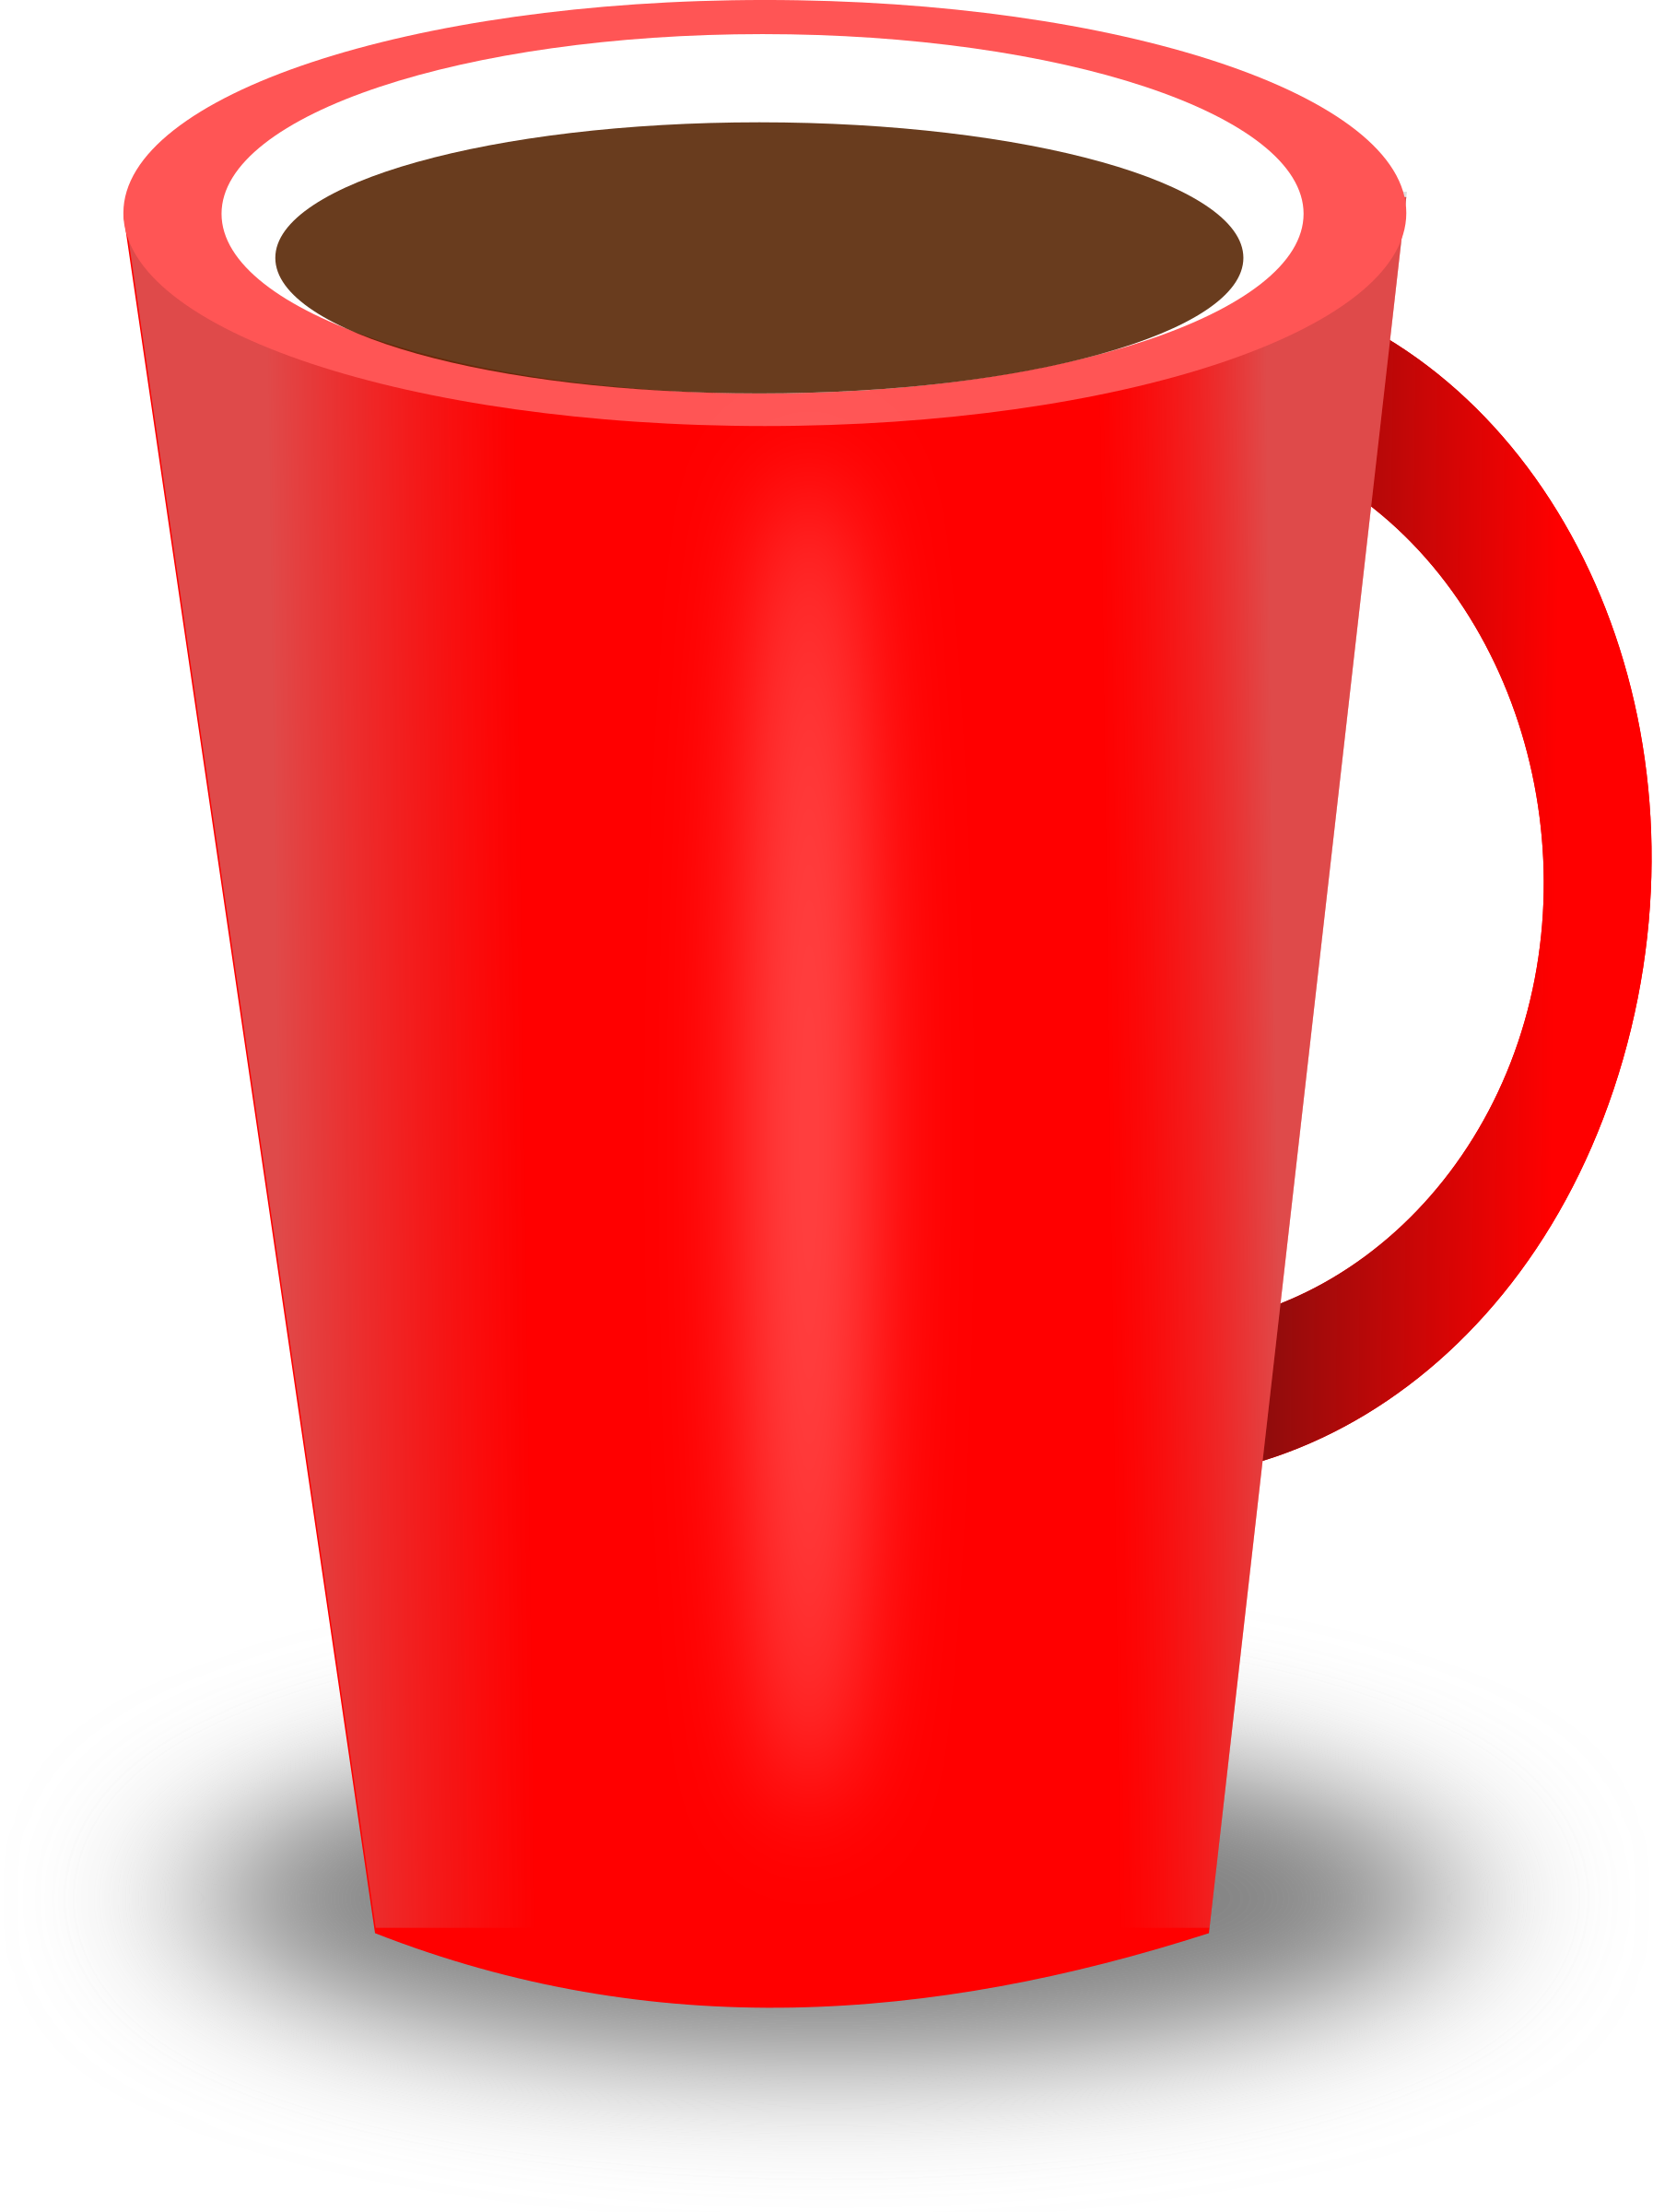 Coffee cup clipart red. Cups mug isolated